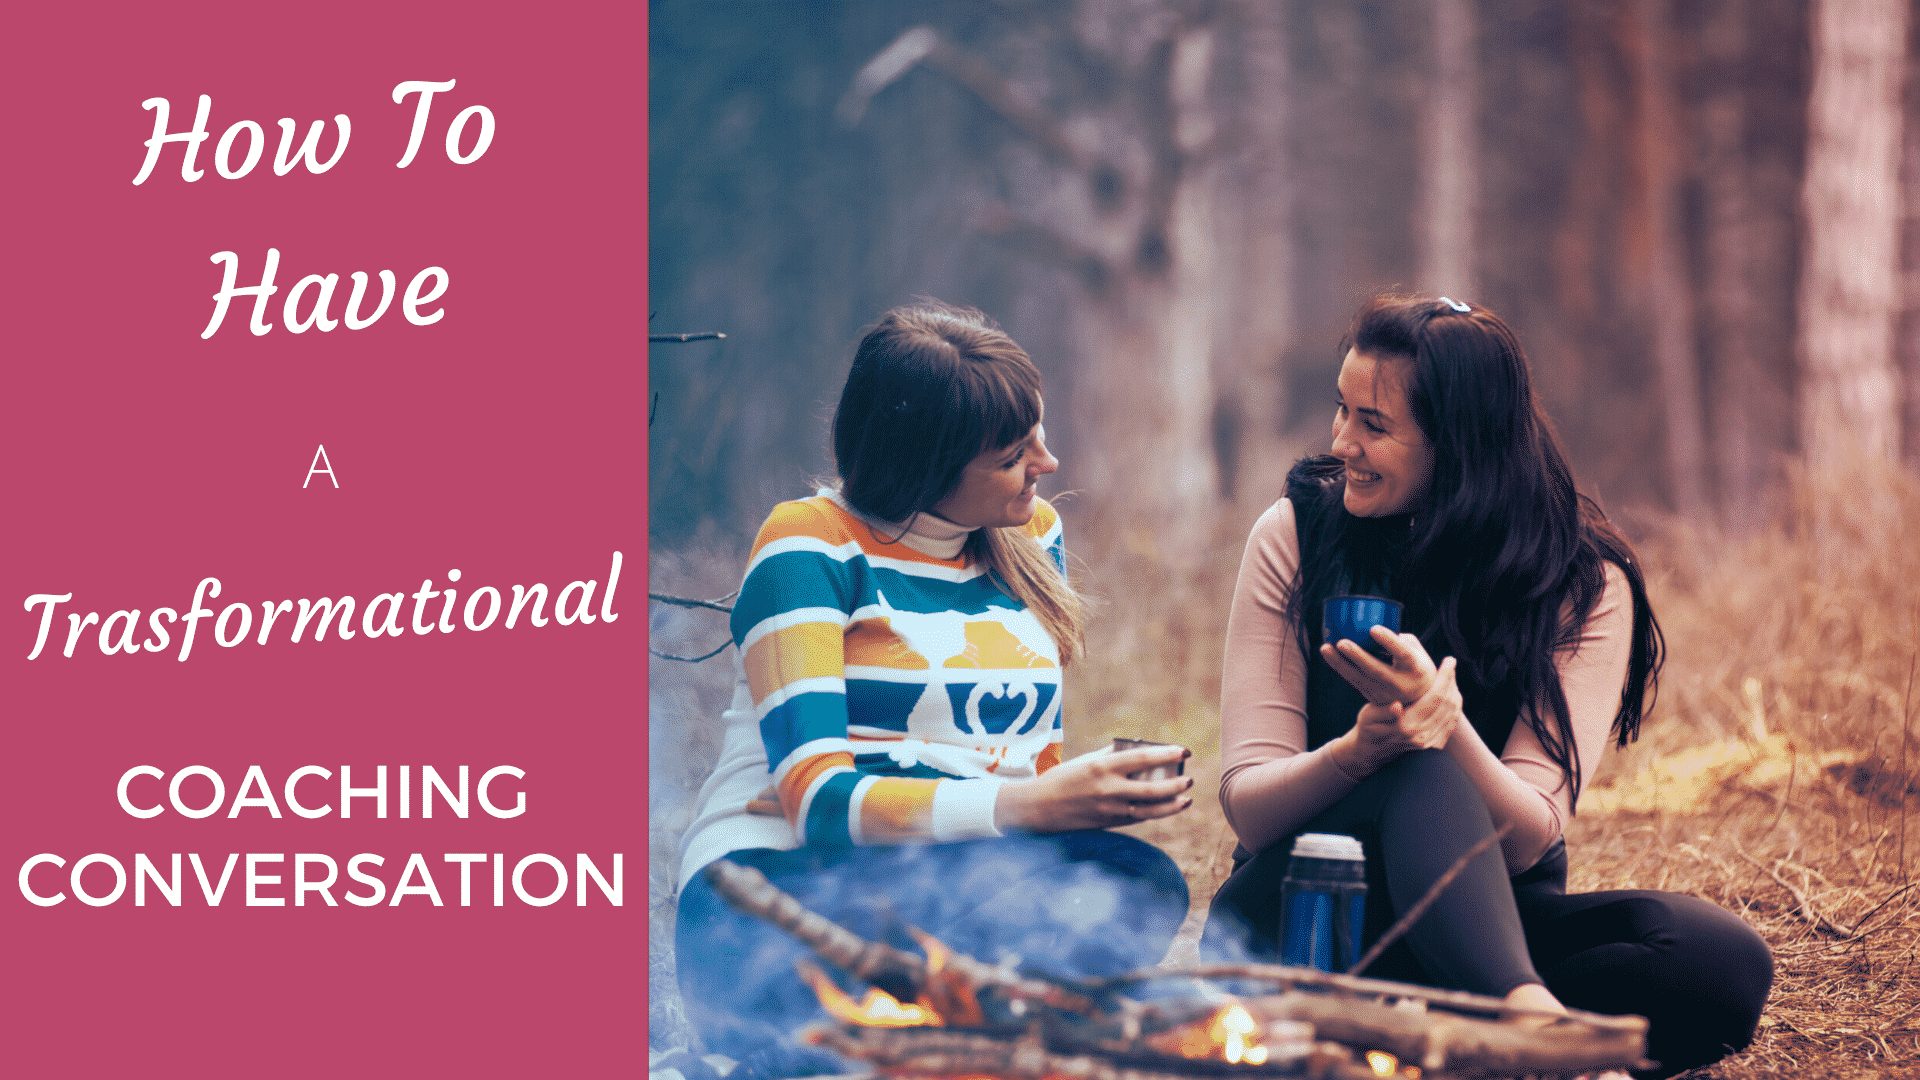 How to Have a Transformational Coaching Conversation in 2021 transformational coaching conversation